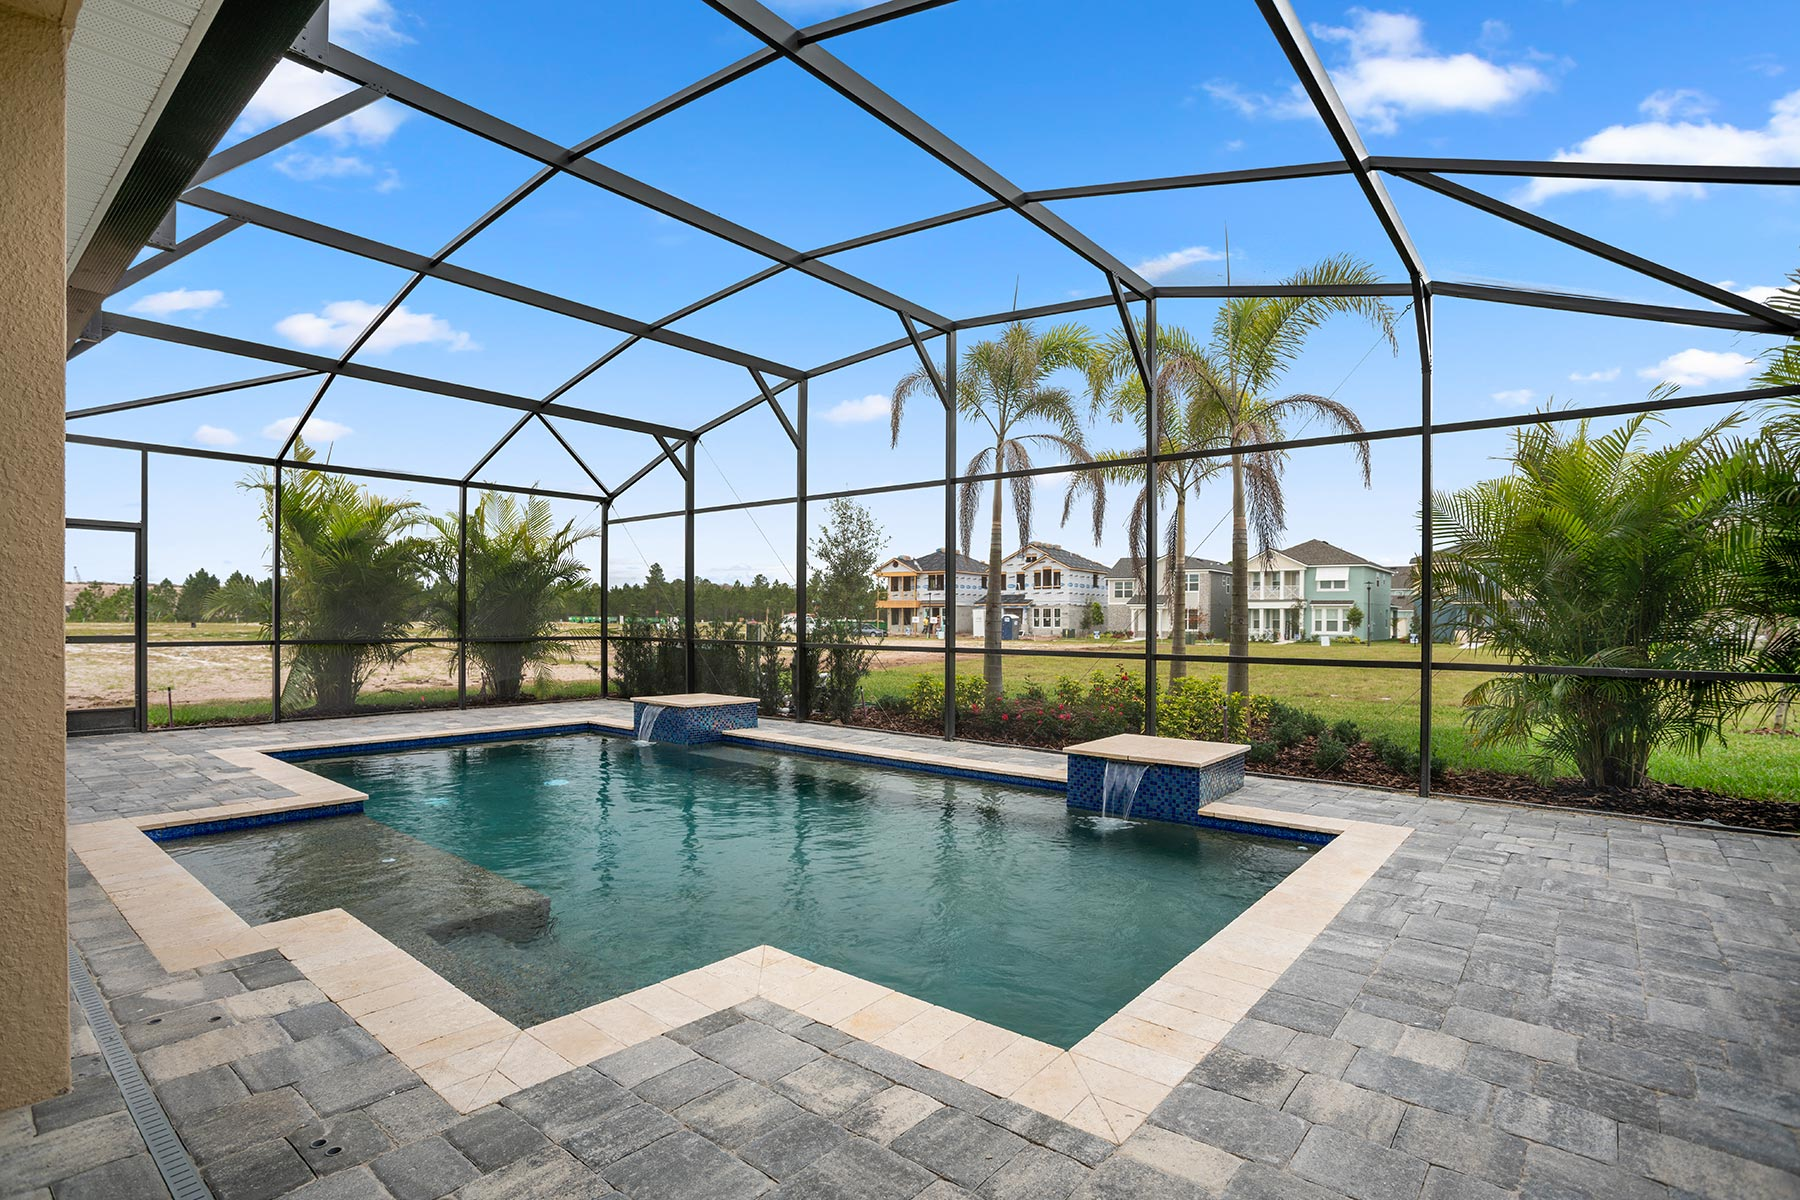 Winthrop Plan WaterFeatures at Tapestry in Kissimmee Florida by Mattamy Homes